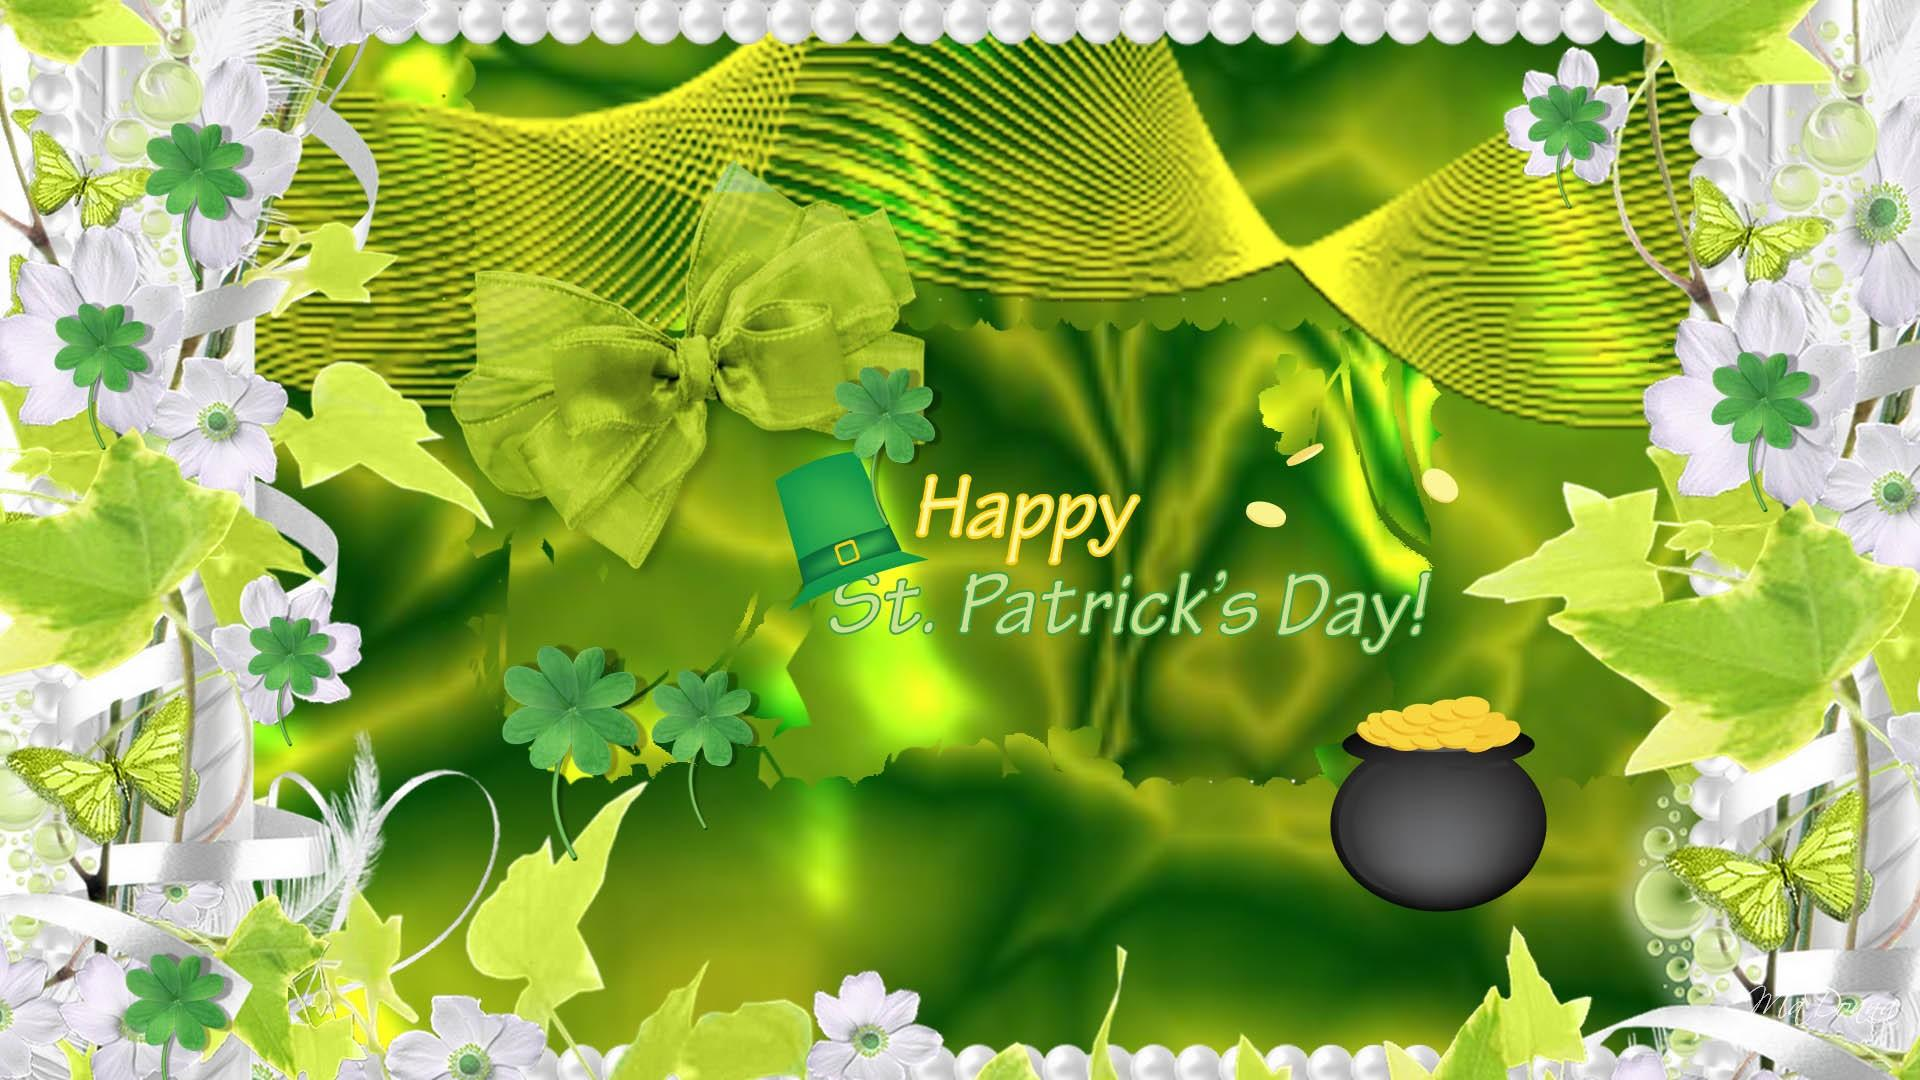 St Patricks Day Computer Wallpapers Desktop Backgrounds 1920x1080